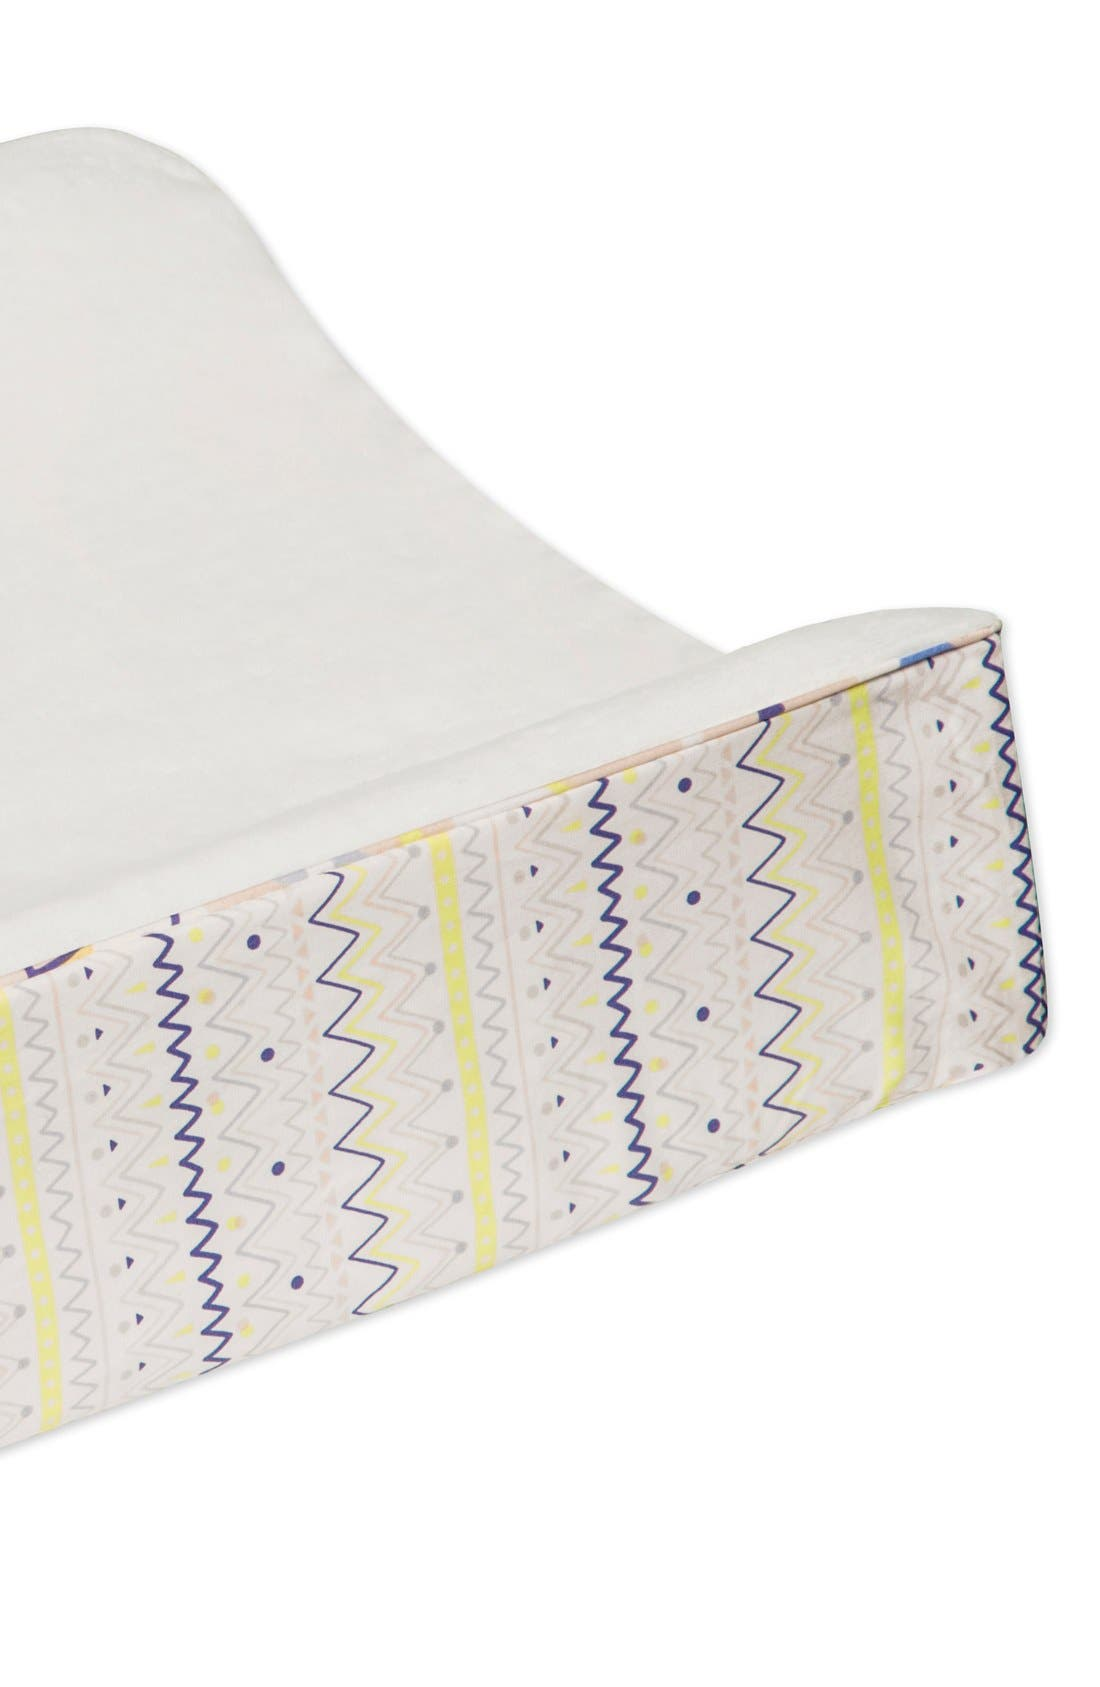 'Desert' Mini Crib Sheet, Changing Pad Cover, Stroller Blanket & Wall Decals,                             Alternate thumbnail 3, color,                             OFF WHITE